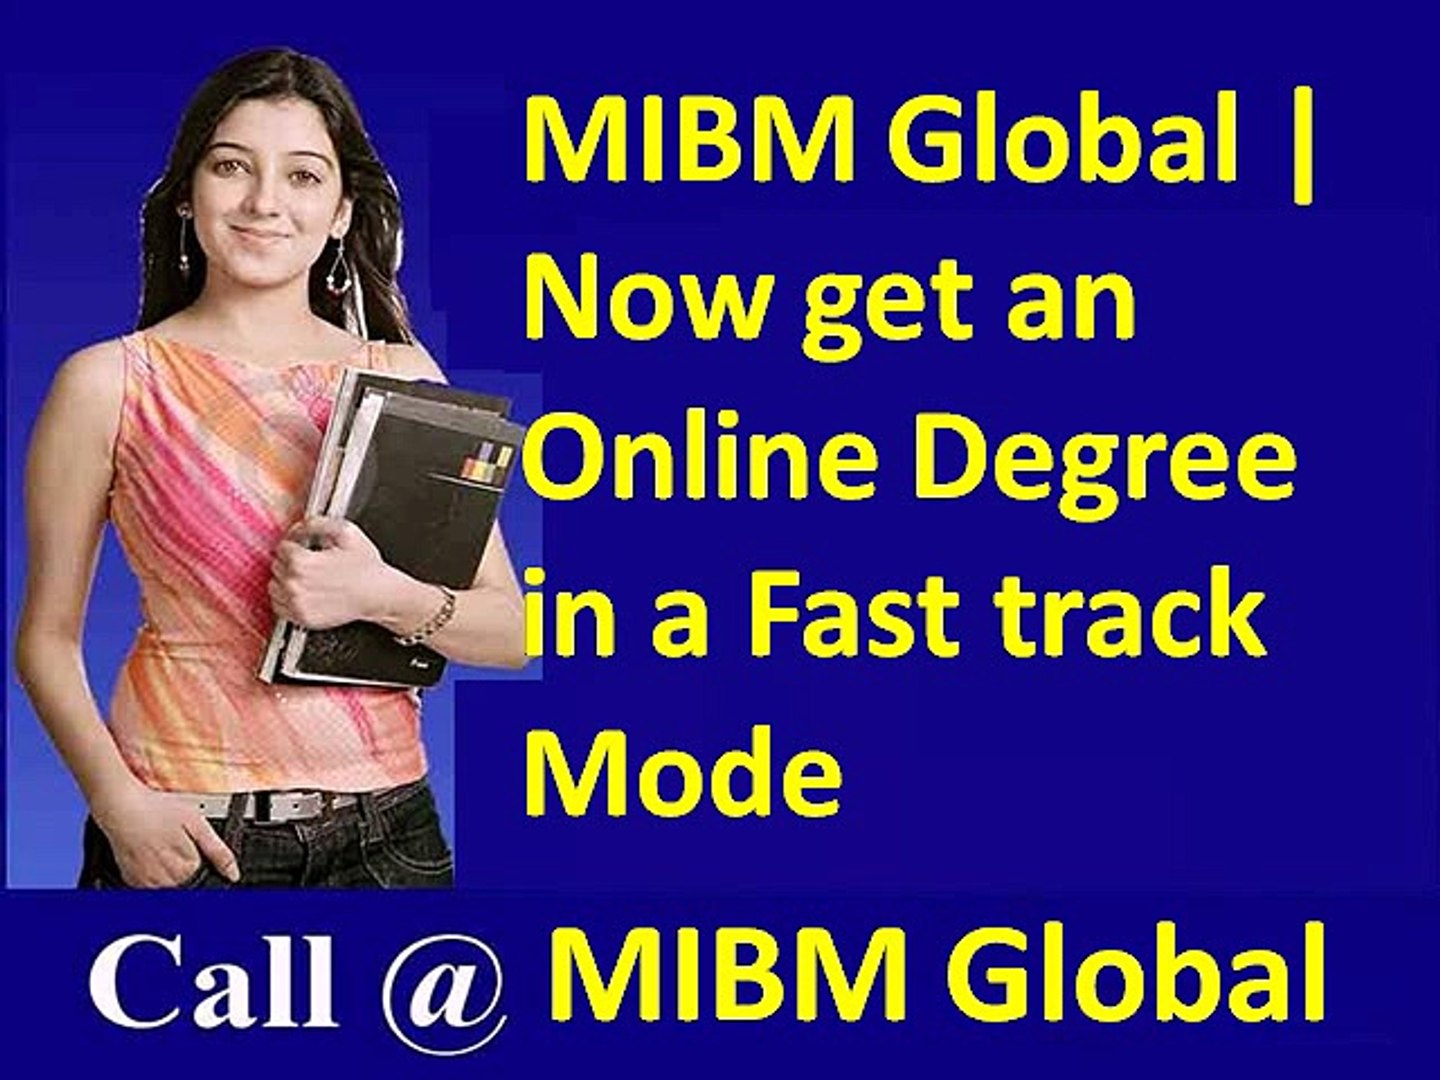 Now get an Online Degree in a Fast track Mode (MIBM GLOBAL)